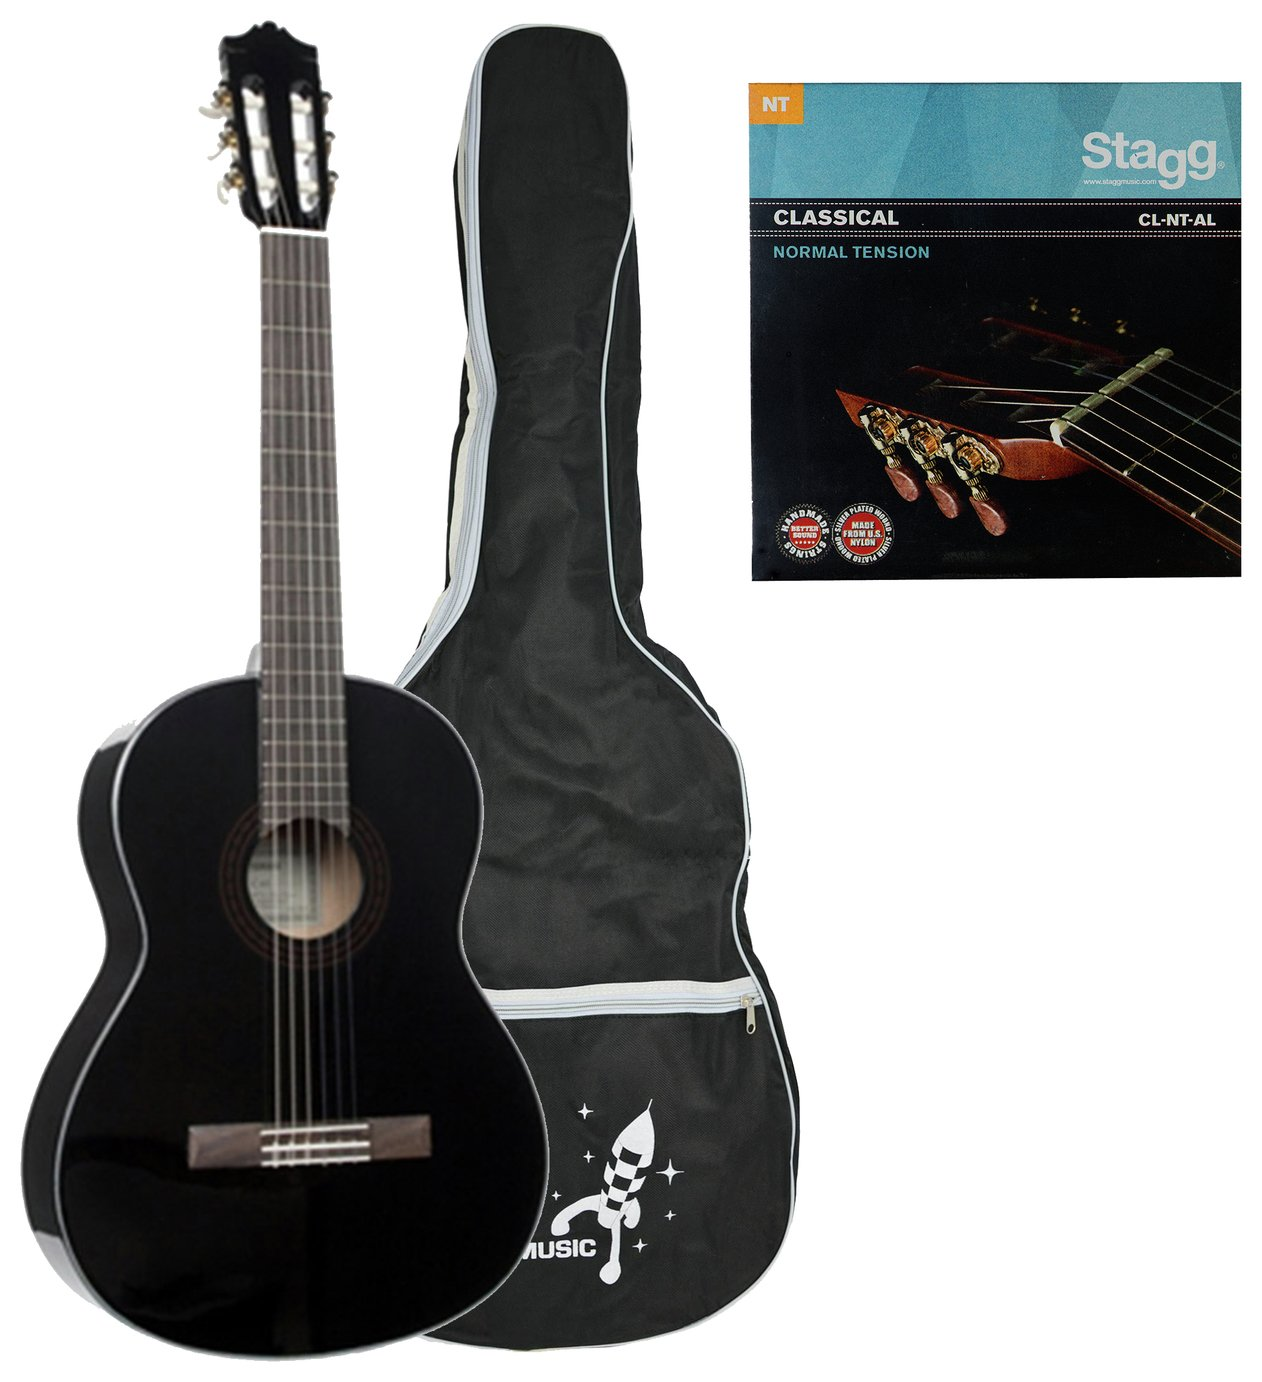 Yamaha C40ii Full Classical Guitar - Black